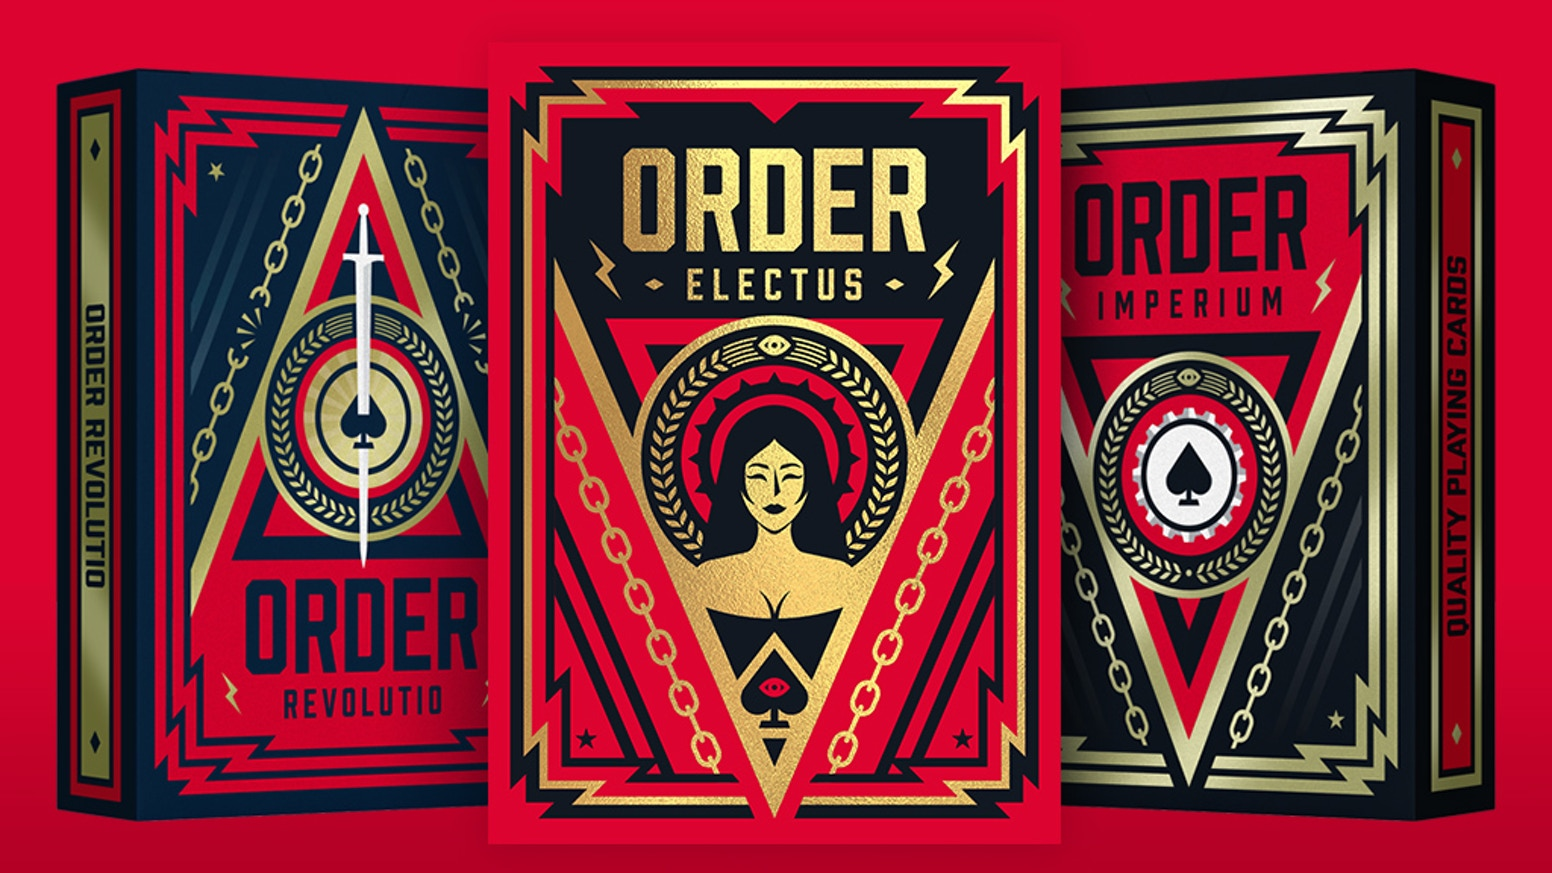 Playing cards inspired by propaganda art and dystopian novels.